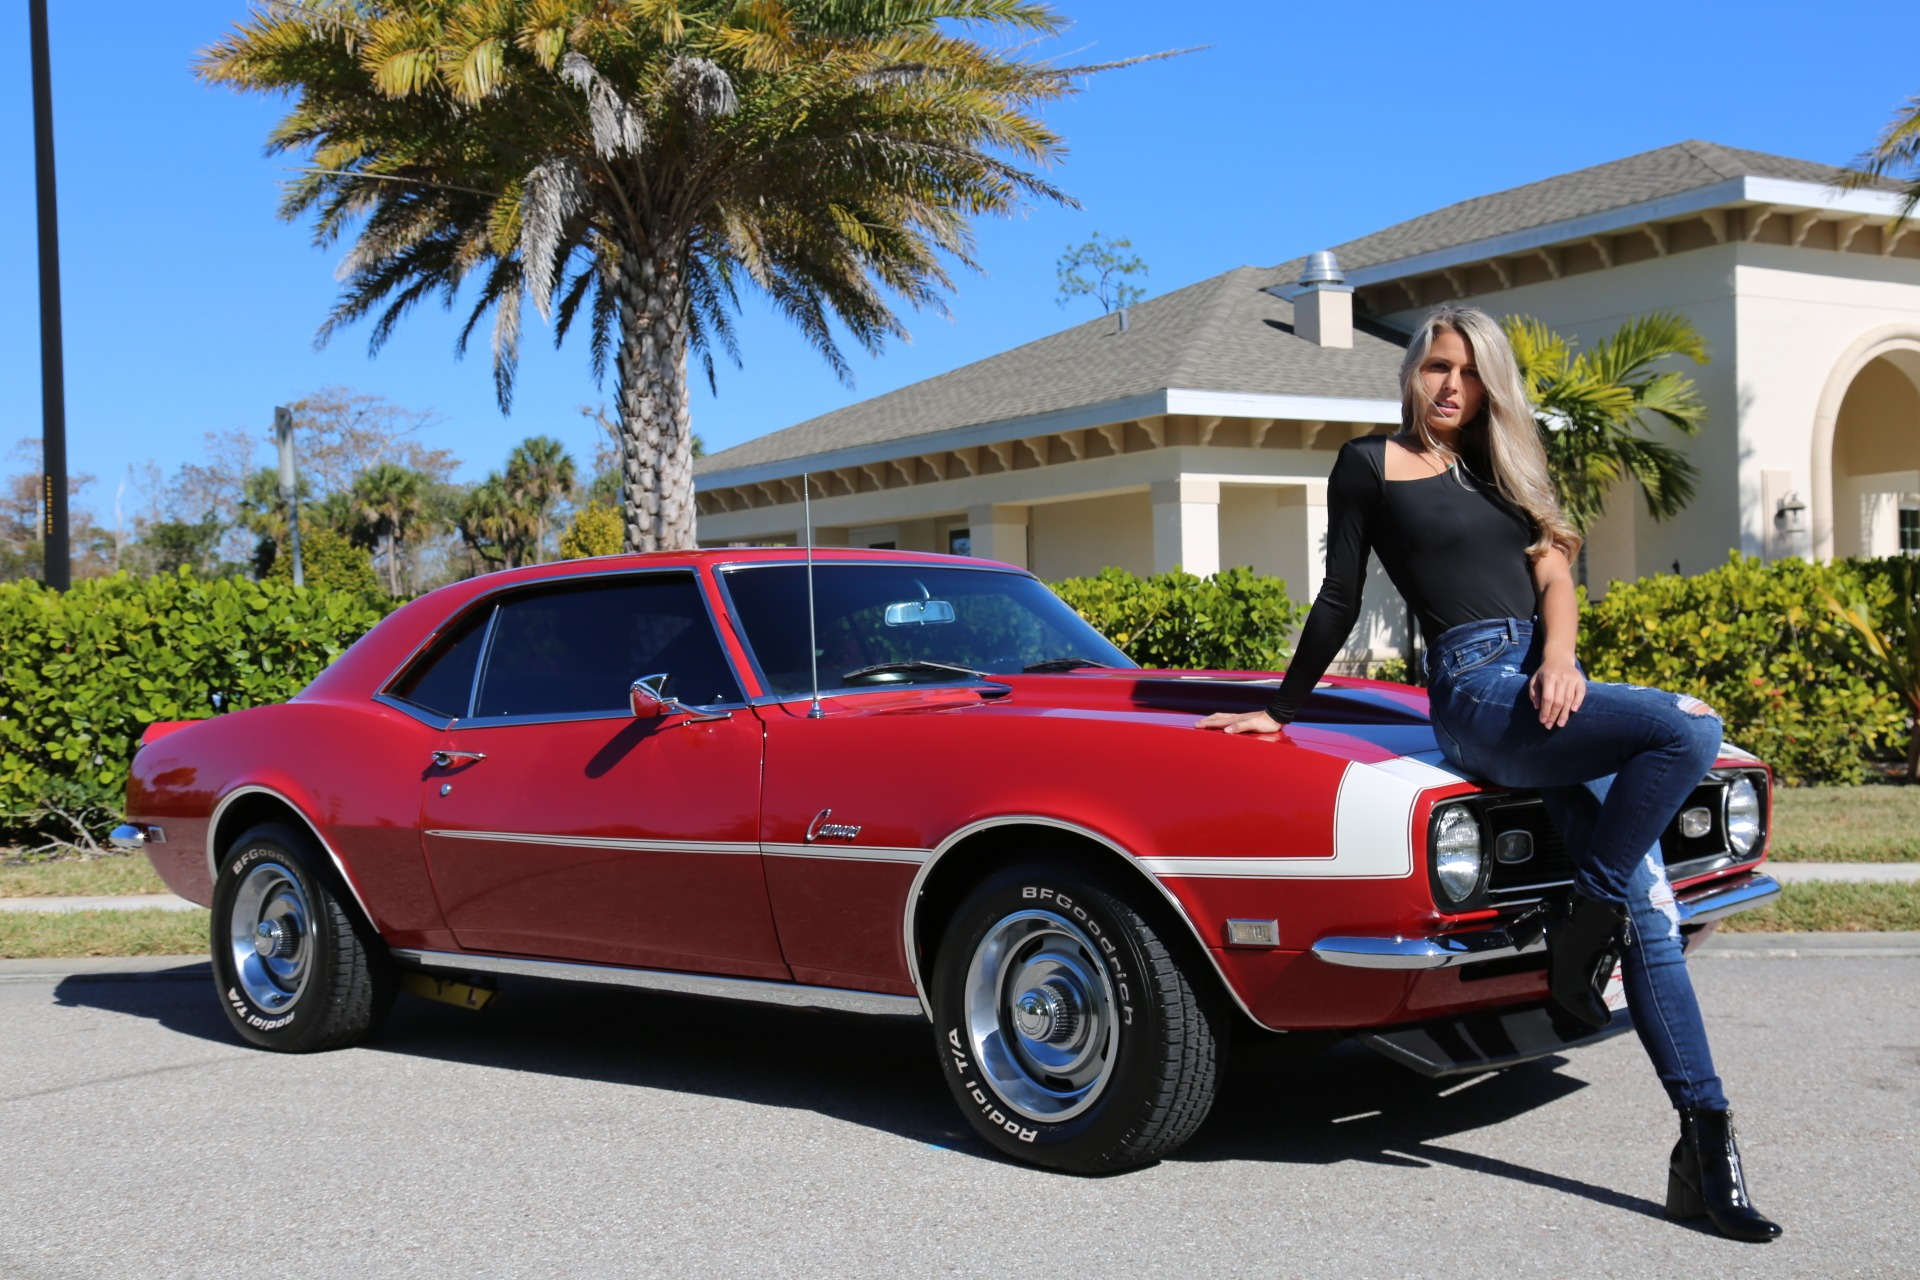 Used 1968 Chevrolet Camaro Camaro V8 350 Auto for sale Sold at Muscle Cars for Sale Inc. in Fort Myers FL 33912 5